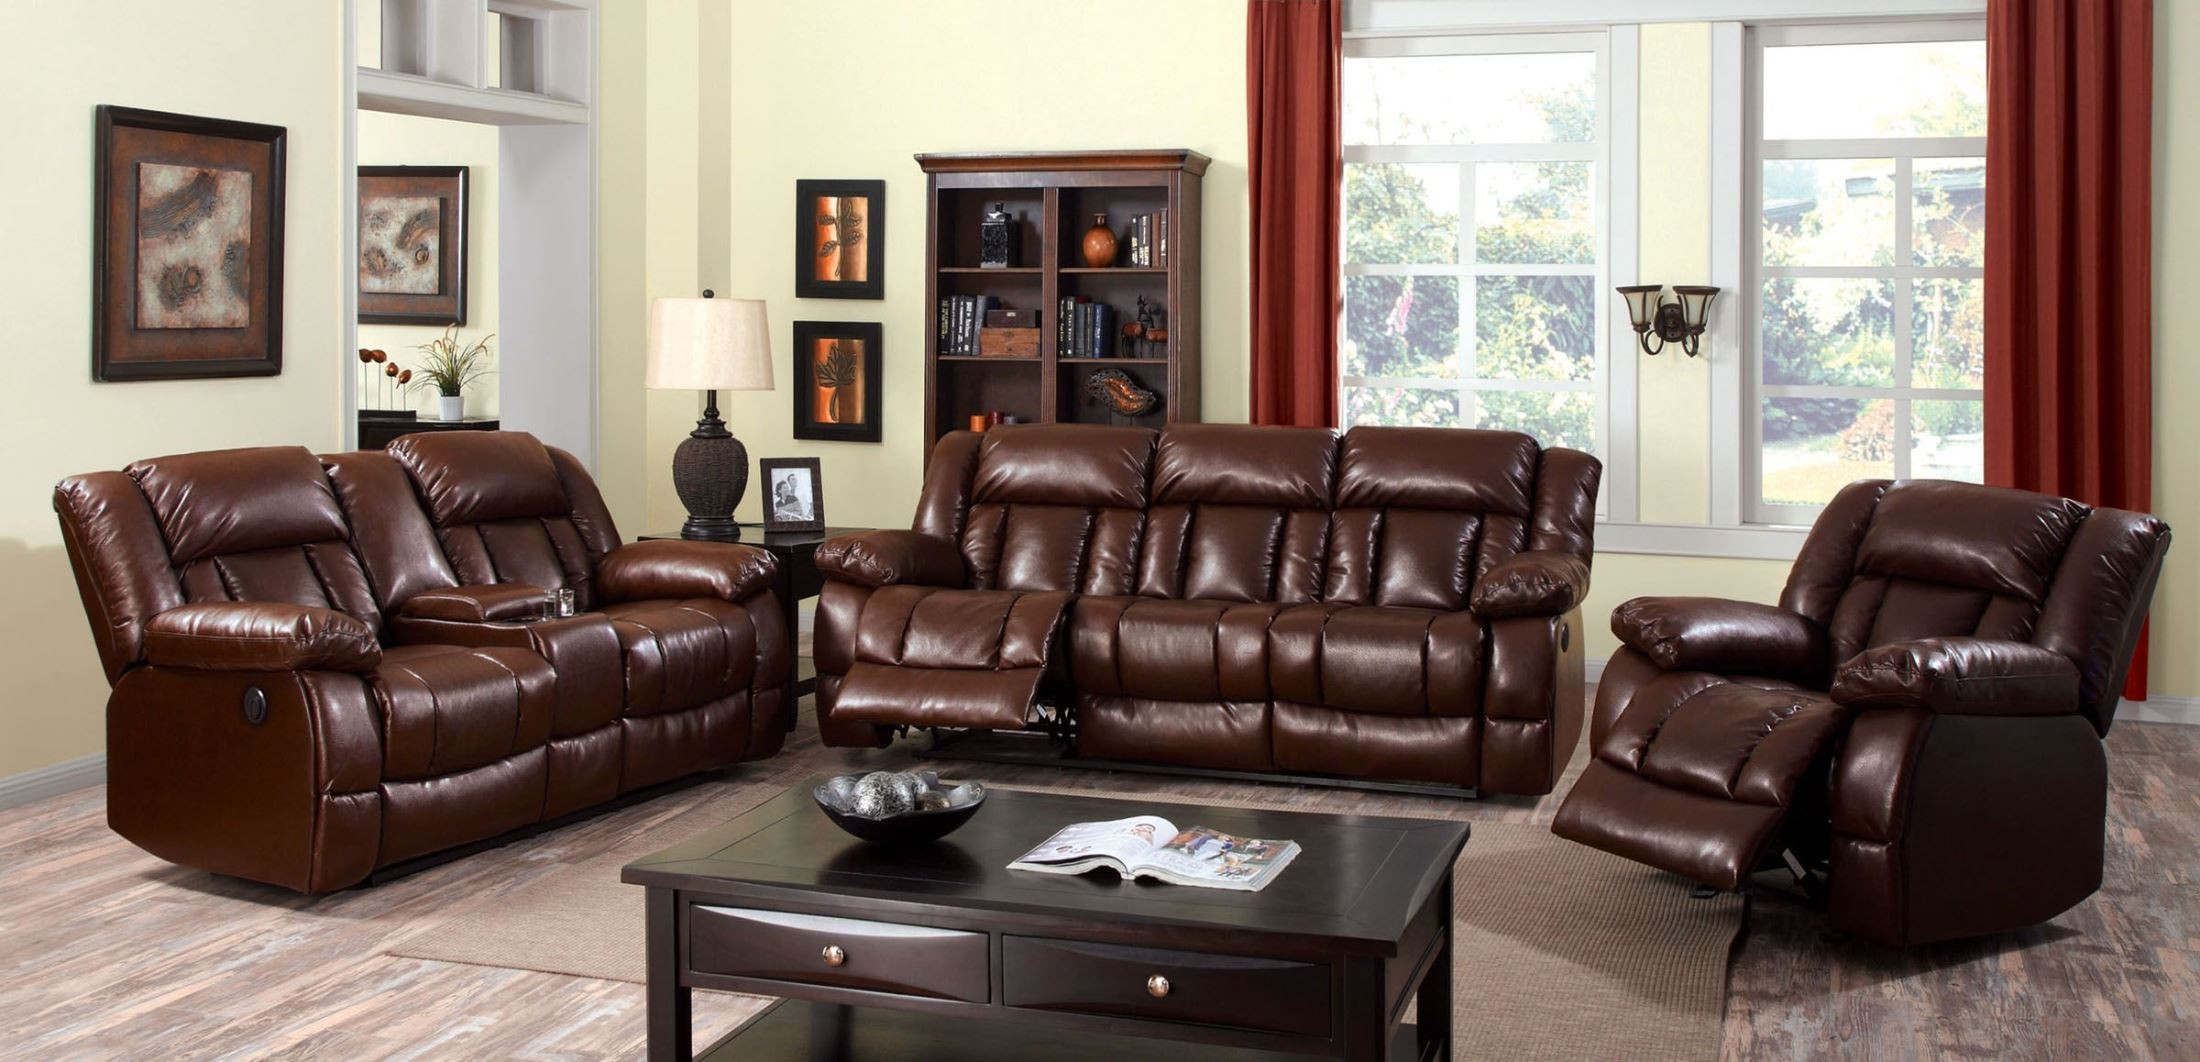 Reclining sofa sets 17 decoration of living room for Cheap reclining living room sets